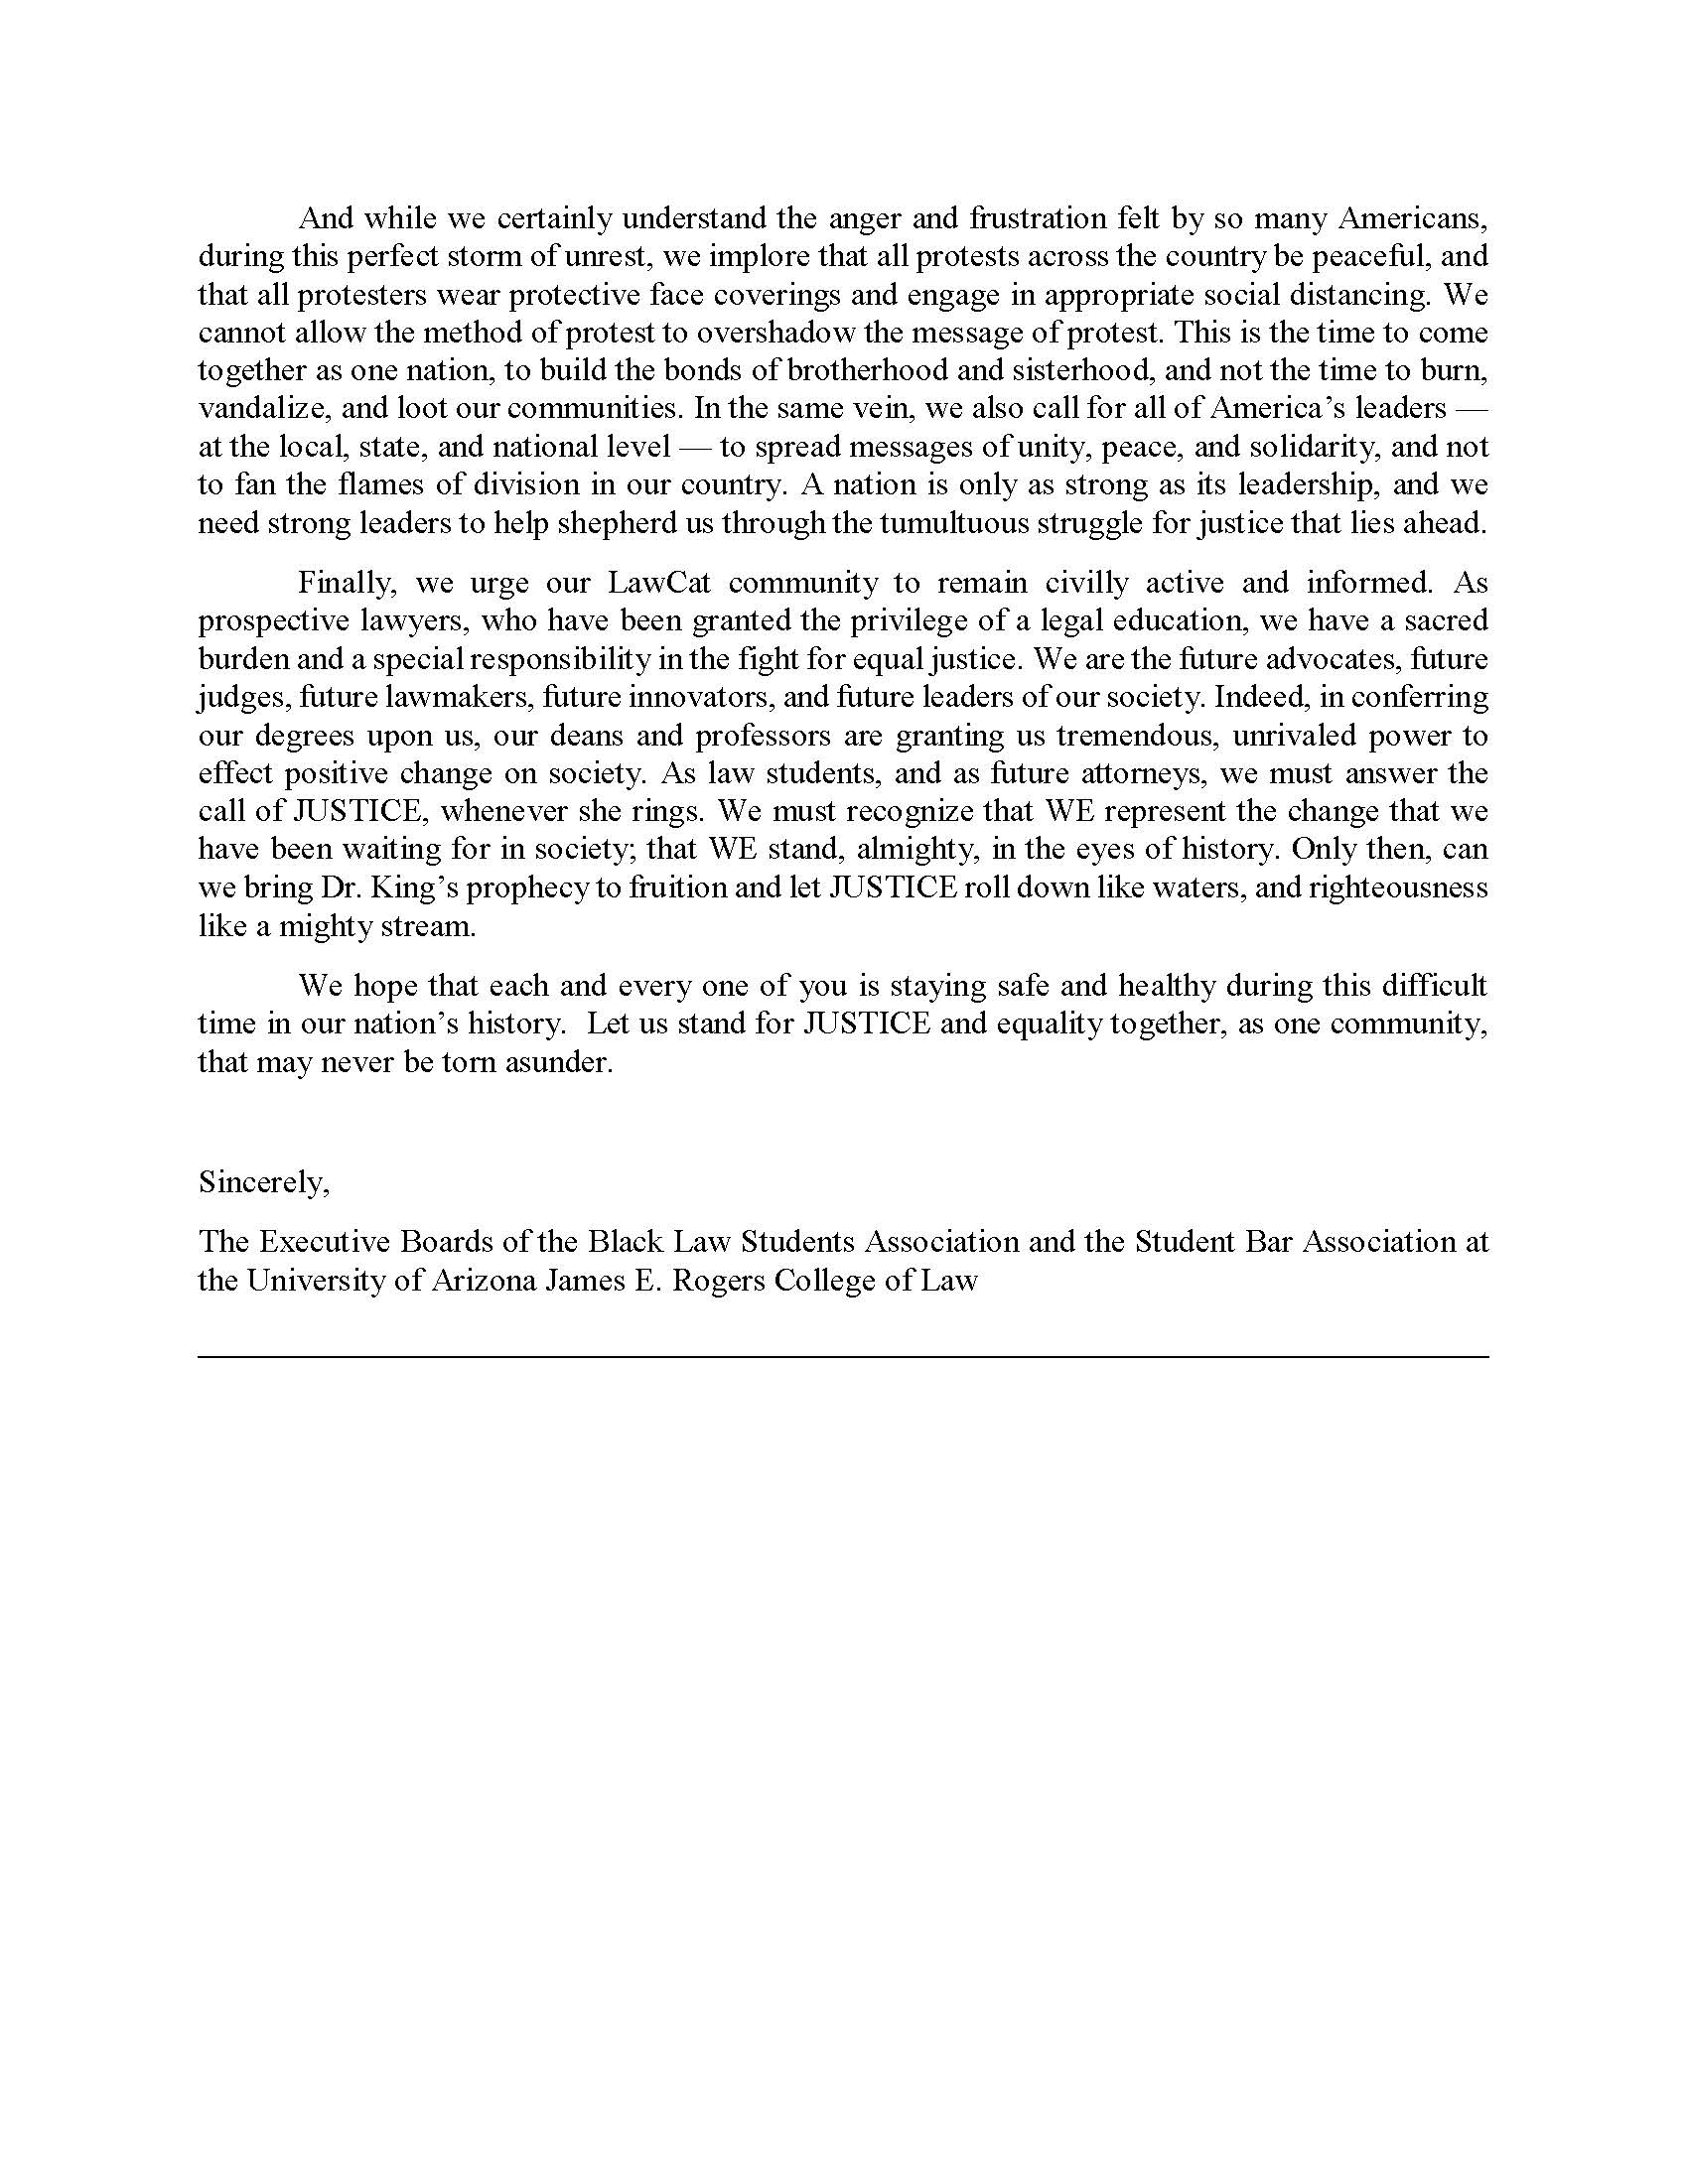 BLSA and SBA Statement